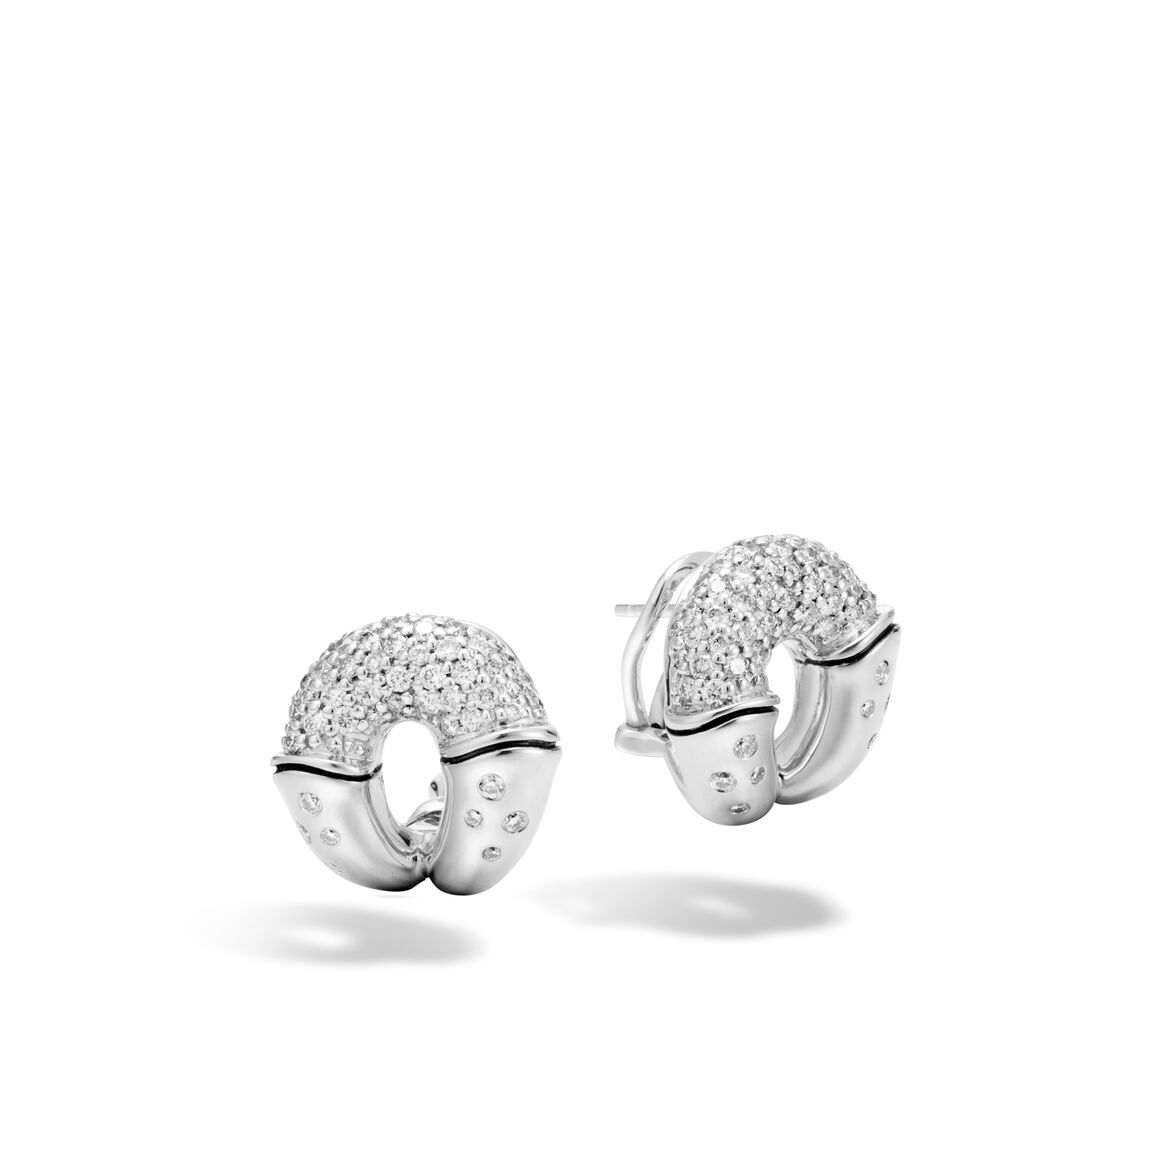 Bamboo Buddha Belly Earring in Silver with Diamonds